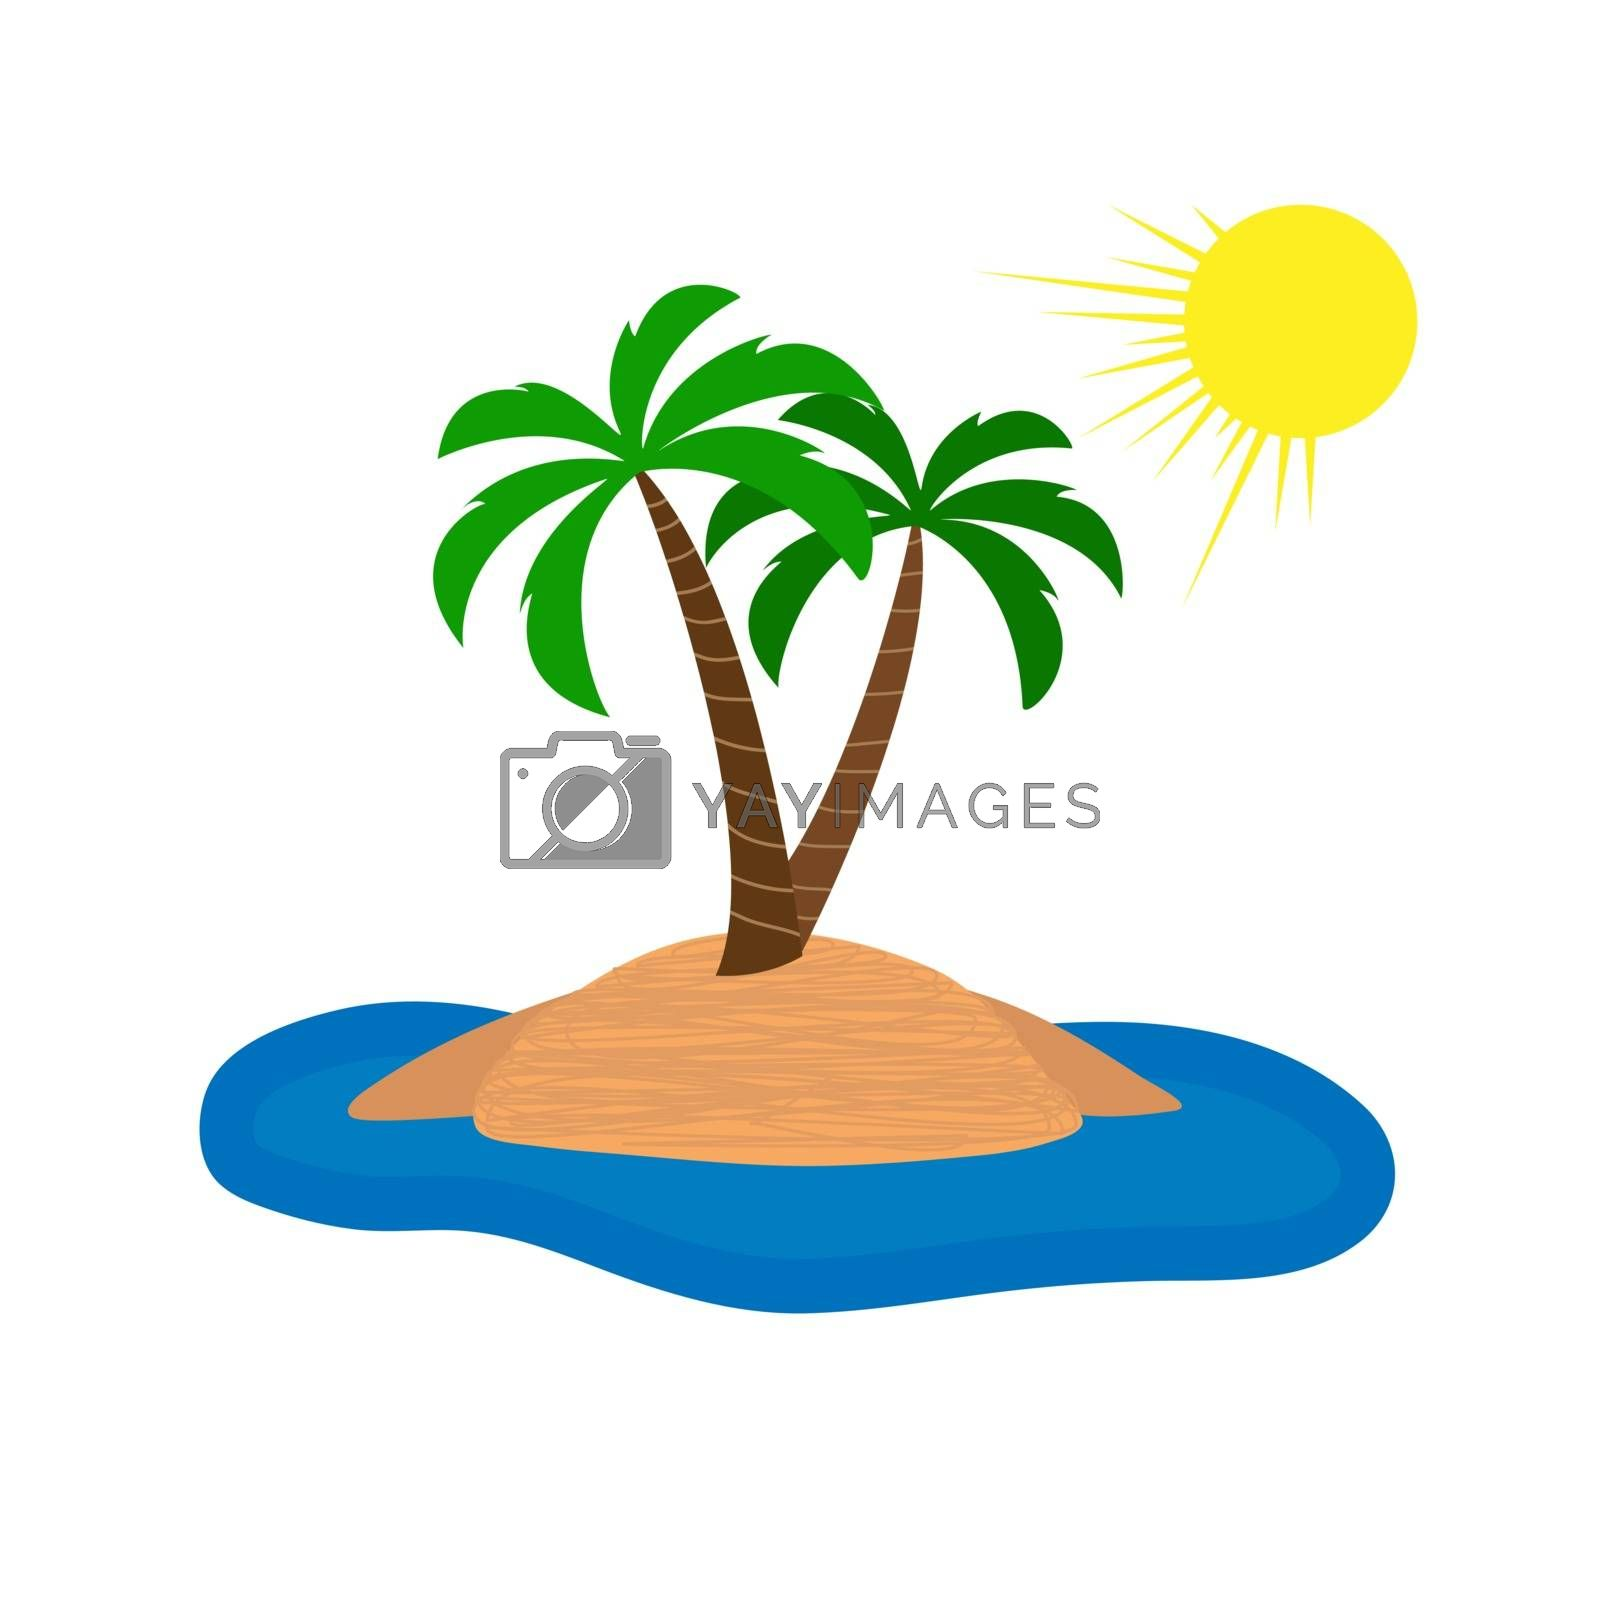 Island in the sea and two palm trees under the sun, simple design